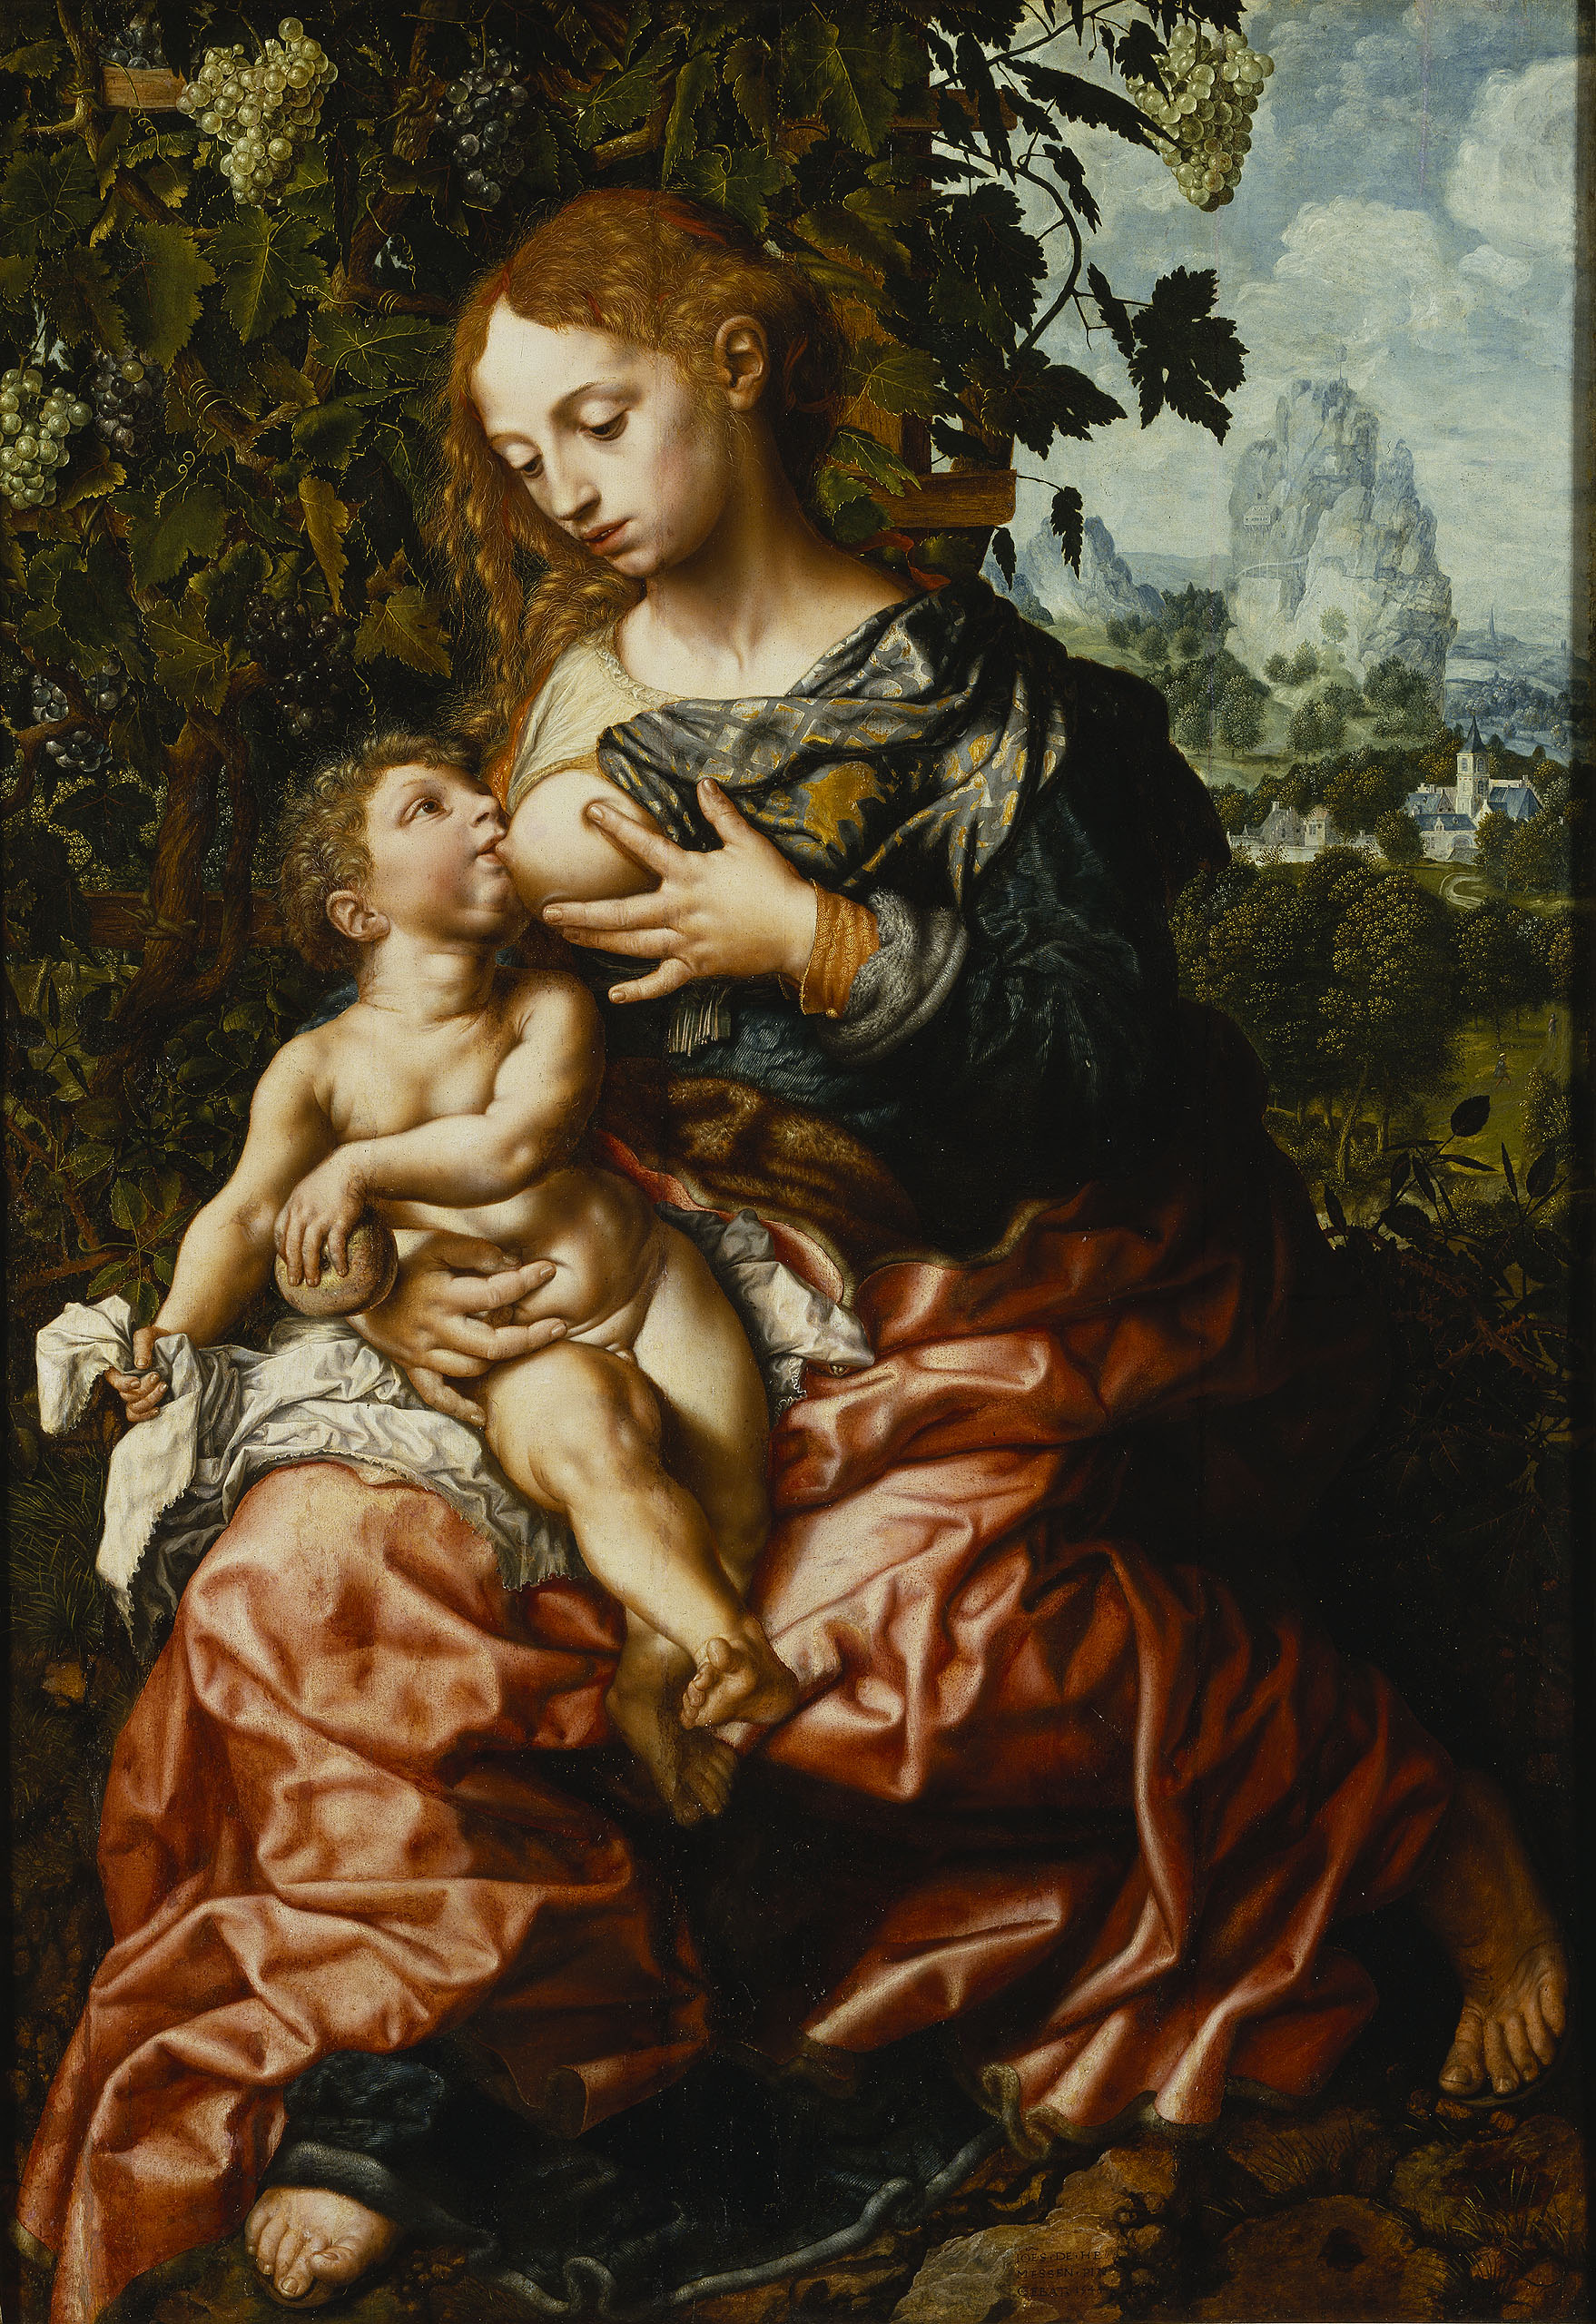 Fig. Fig. 2. Jan van Hemessen (1500-1556/57), Madonna of Humility, 1544 (inv. no. NM 2140)Jan van Hemessen, Madonna of Humility, 1544 (inv. no. NM 2140)